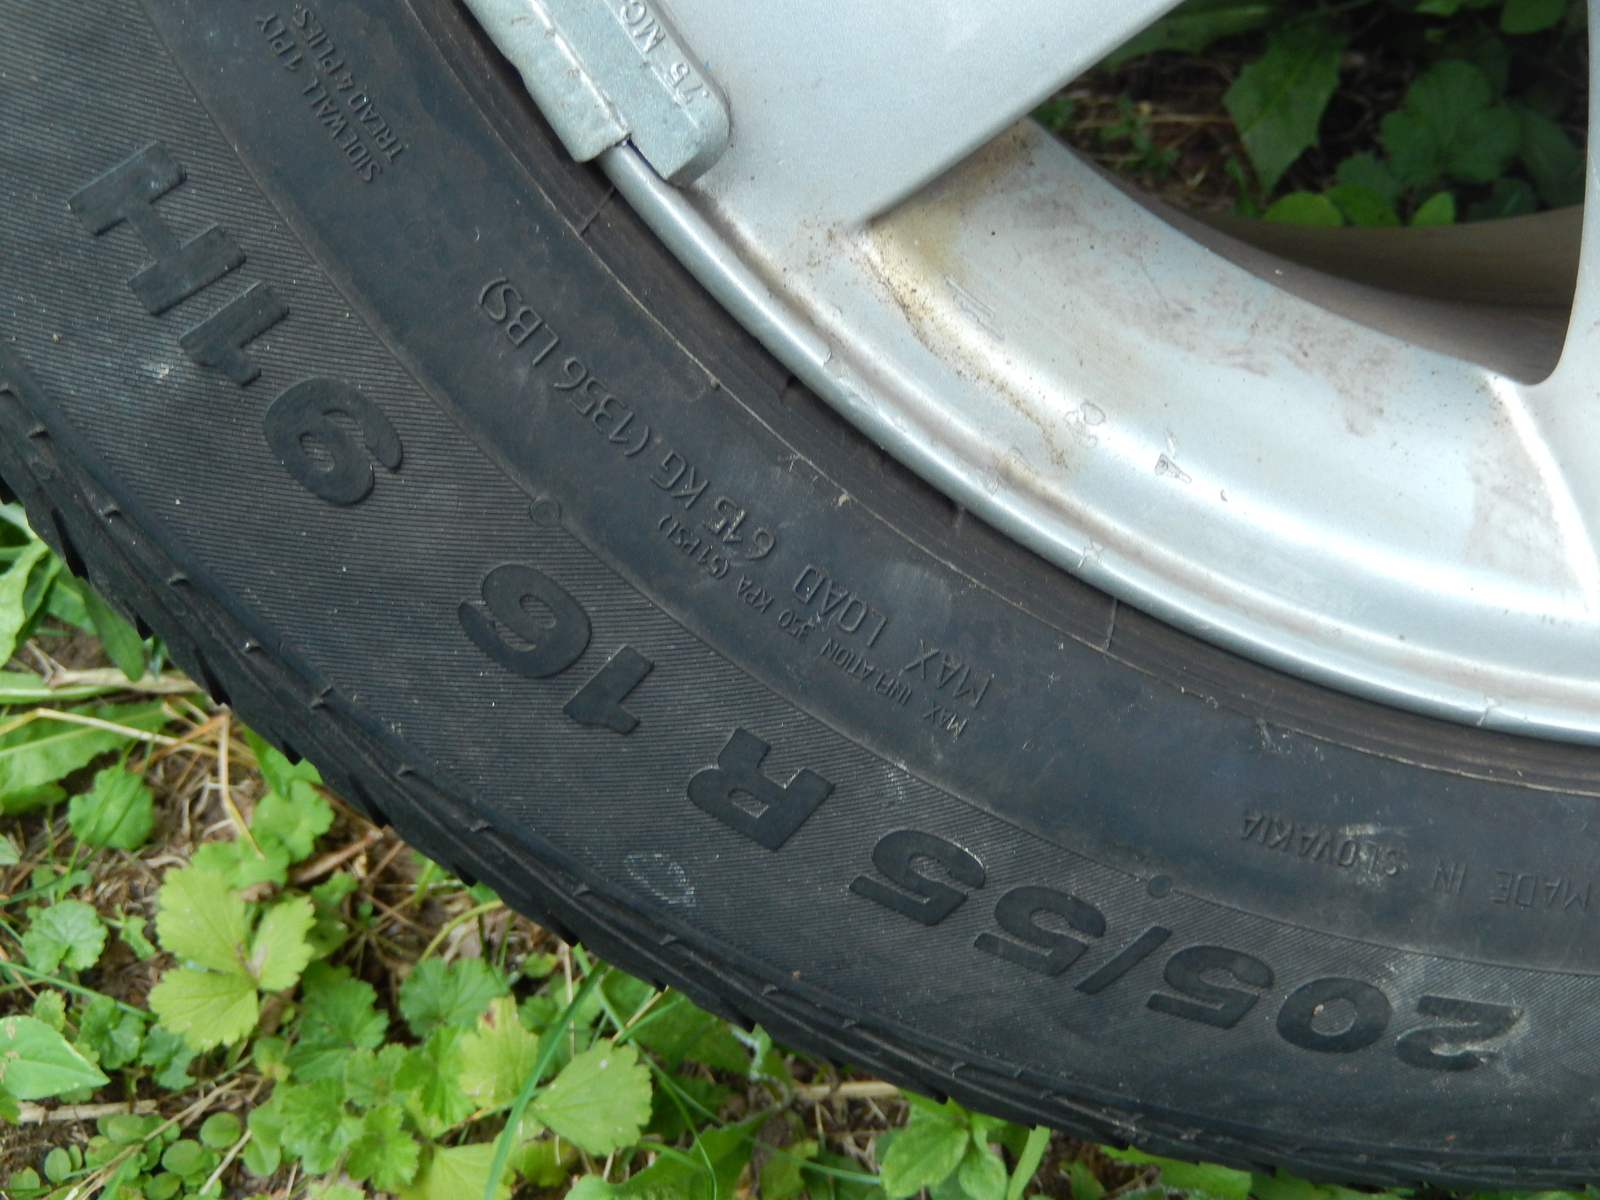 1 Blizzak Bridgestone Tire 215/R6016 and 4 BMW Aluminum Rims